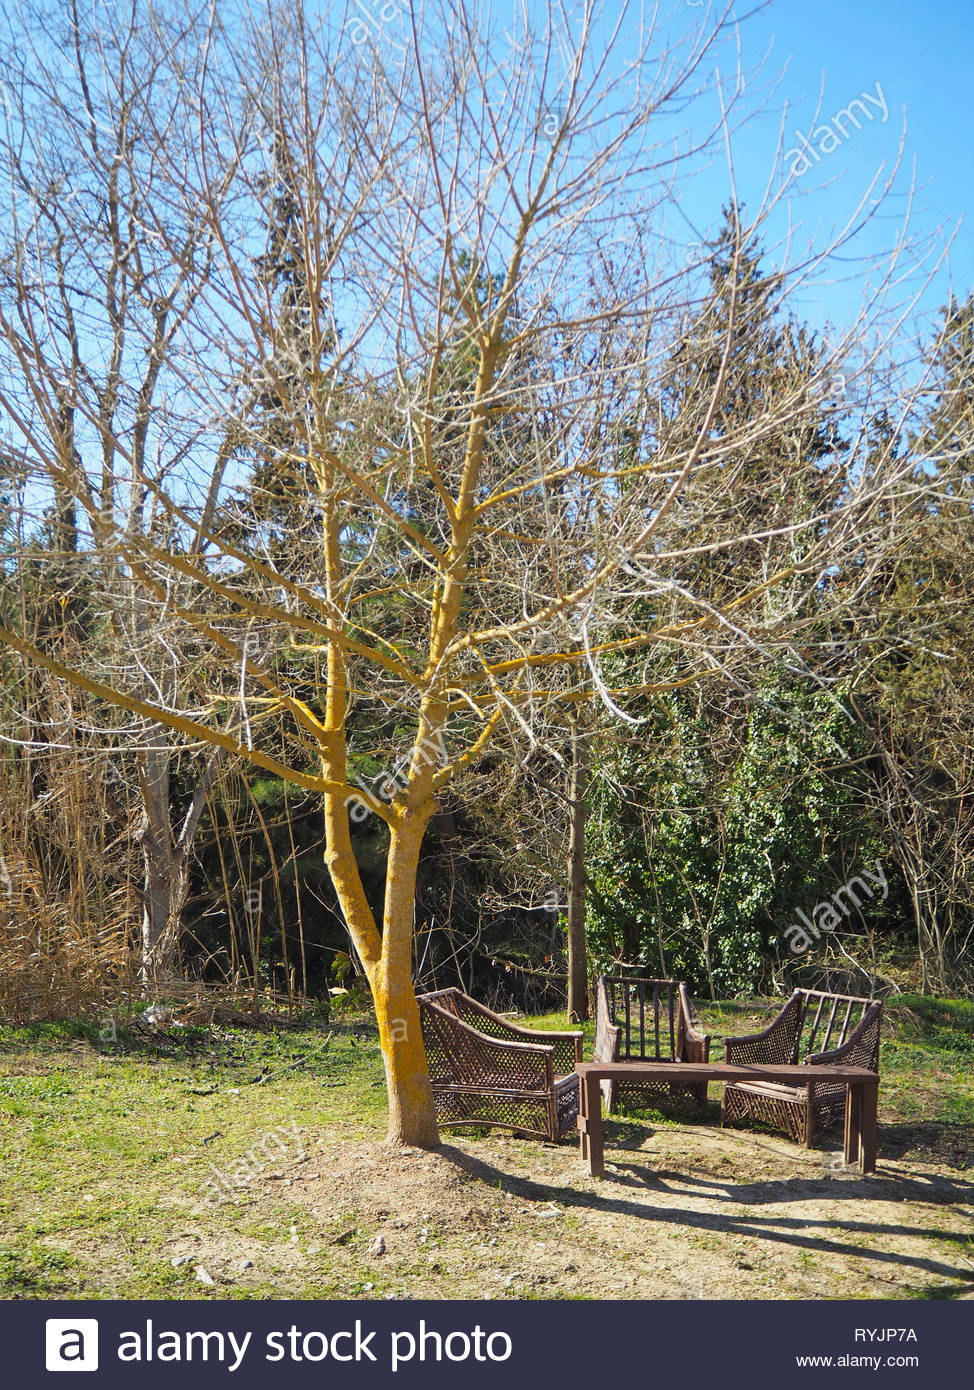 A tree with almost yellow trunk with three bamboo chairs and a wooden simple bench - Stock Image